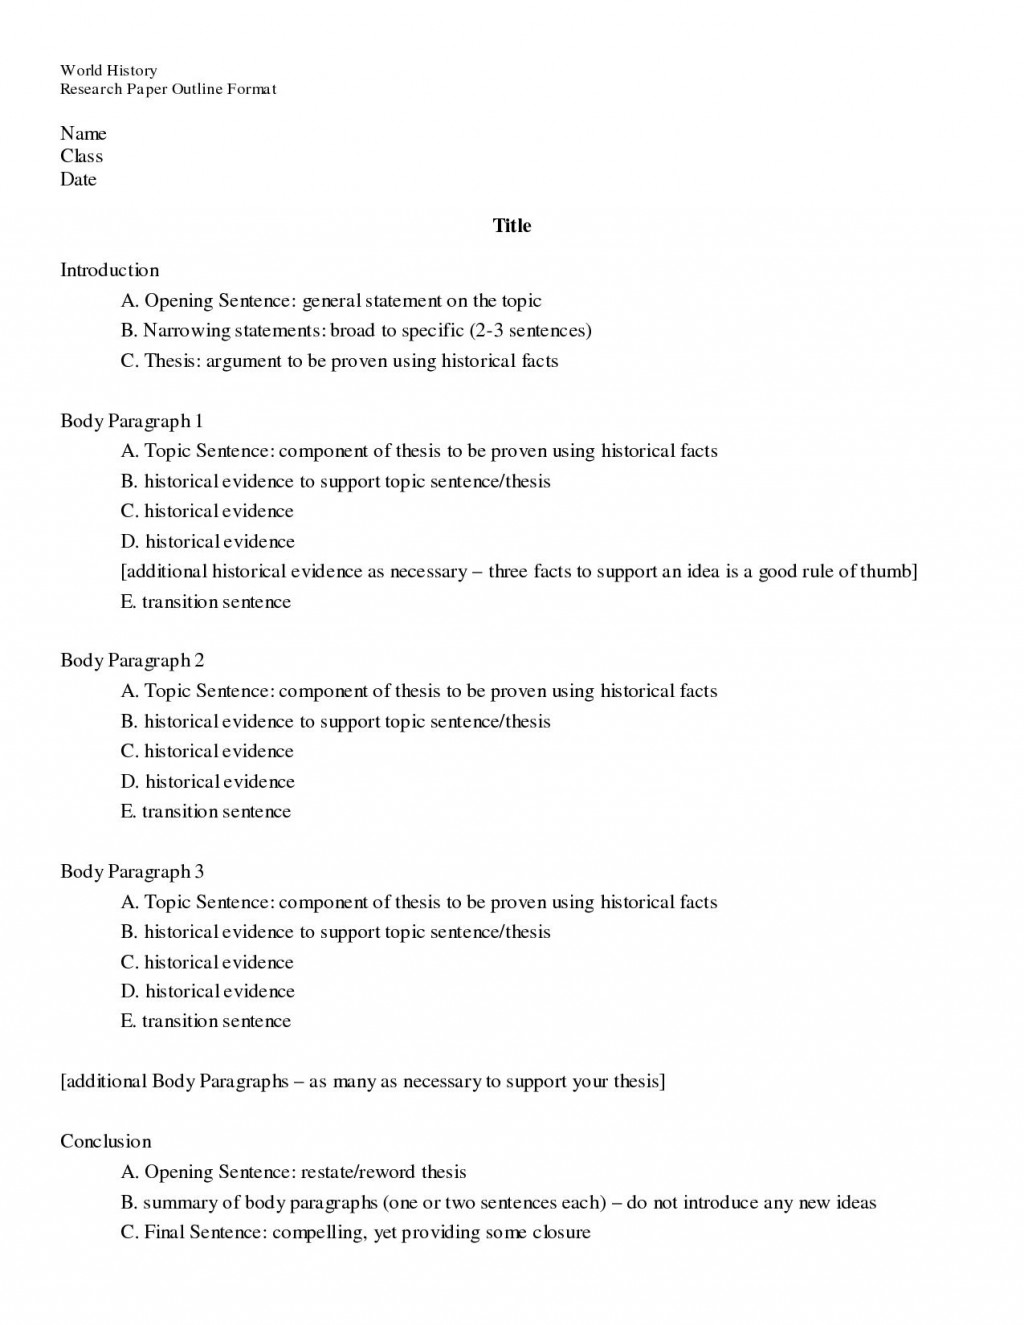 012 Outline Image1 Sample Outlines For Researchs Awful Research Papers Writing Example Examples Of Apa Paper Large